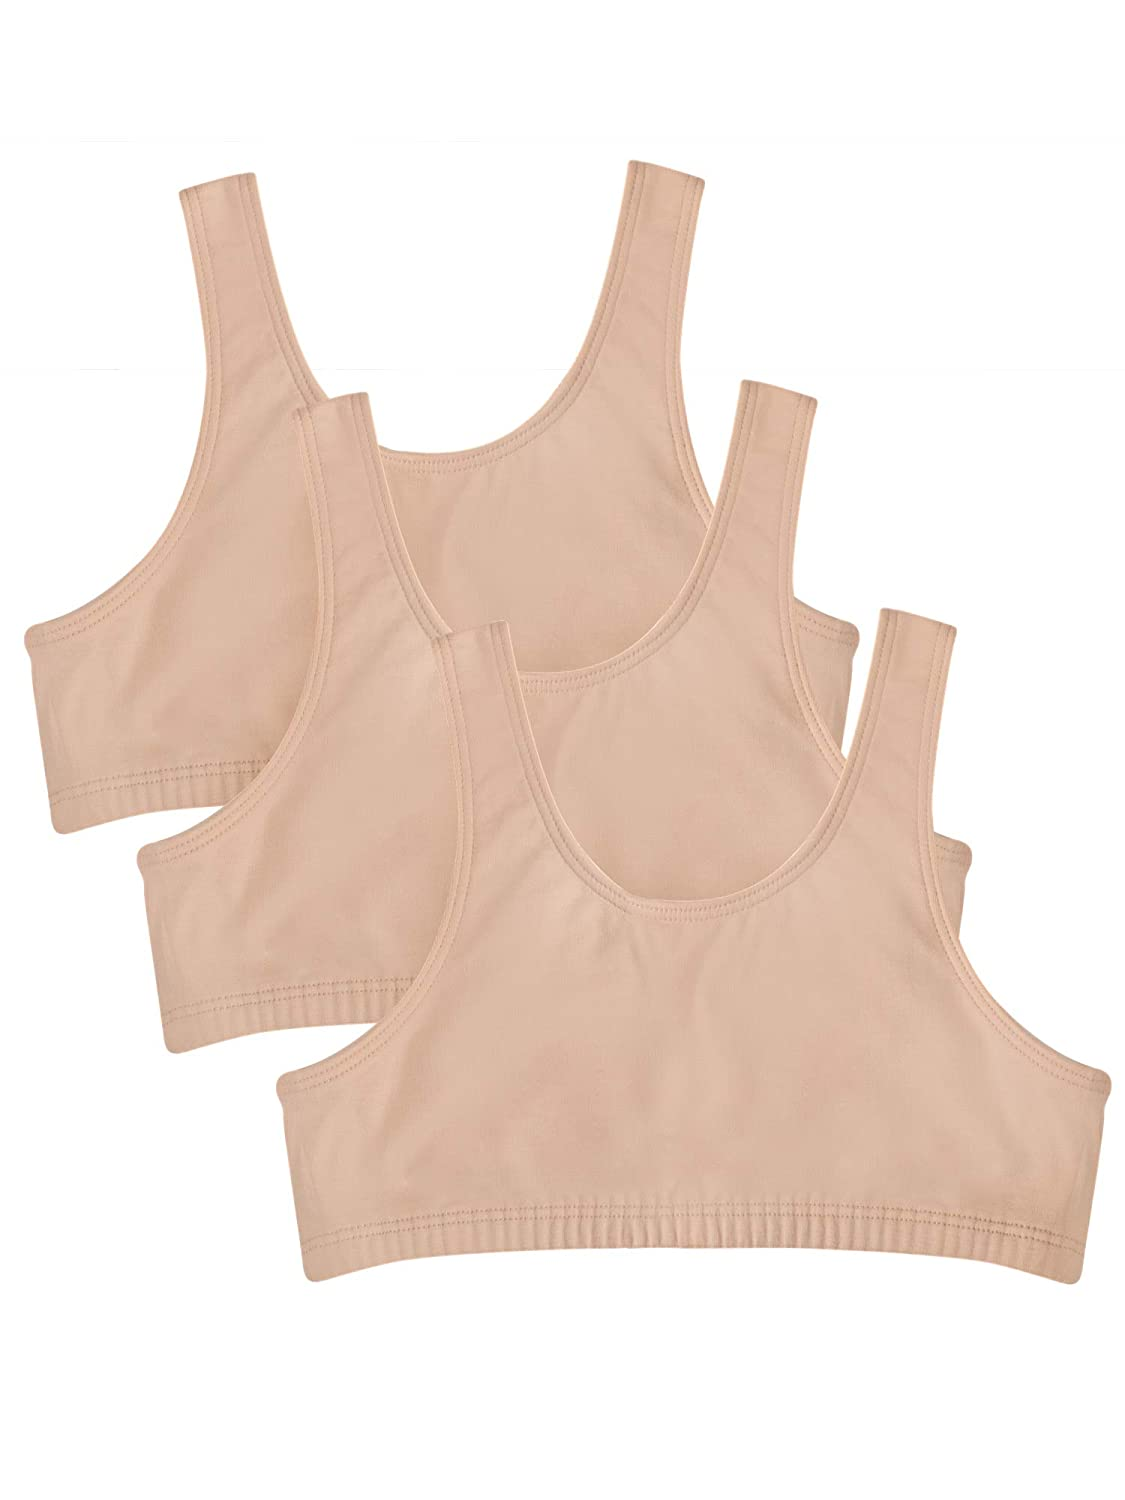 Fruit of the Loom Big Girls Cotton Built-Up Sport Bra Fruit of the Loom Girls 7-16 Bras 94022